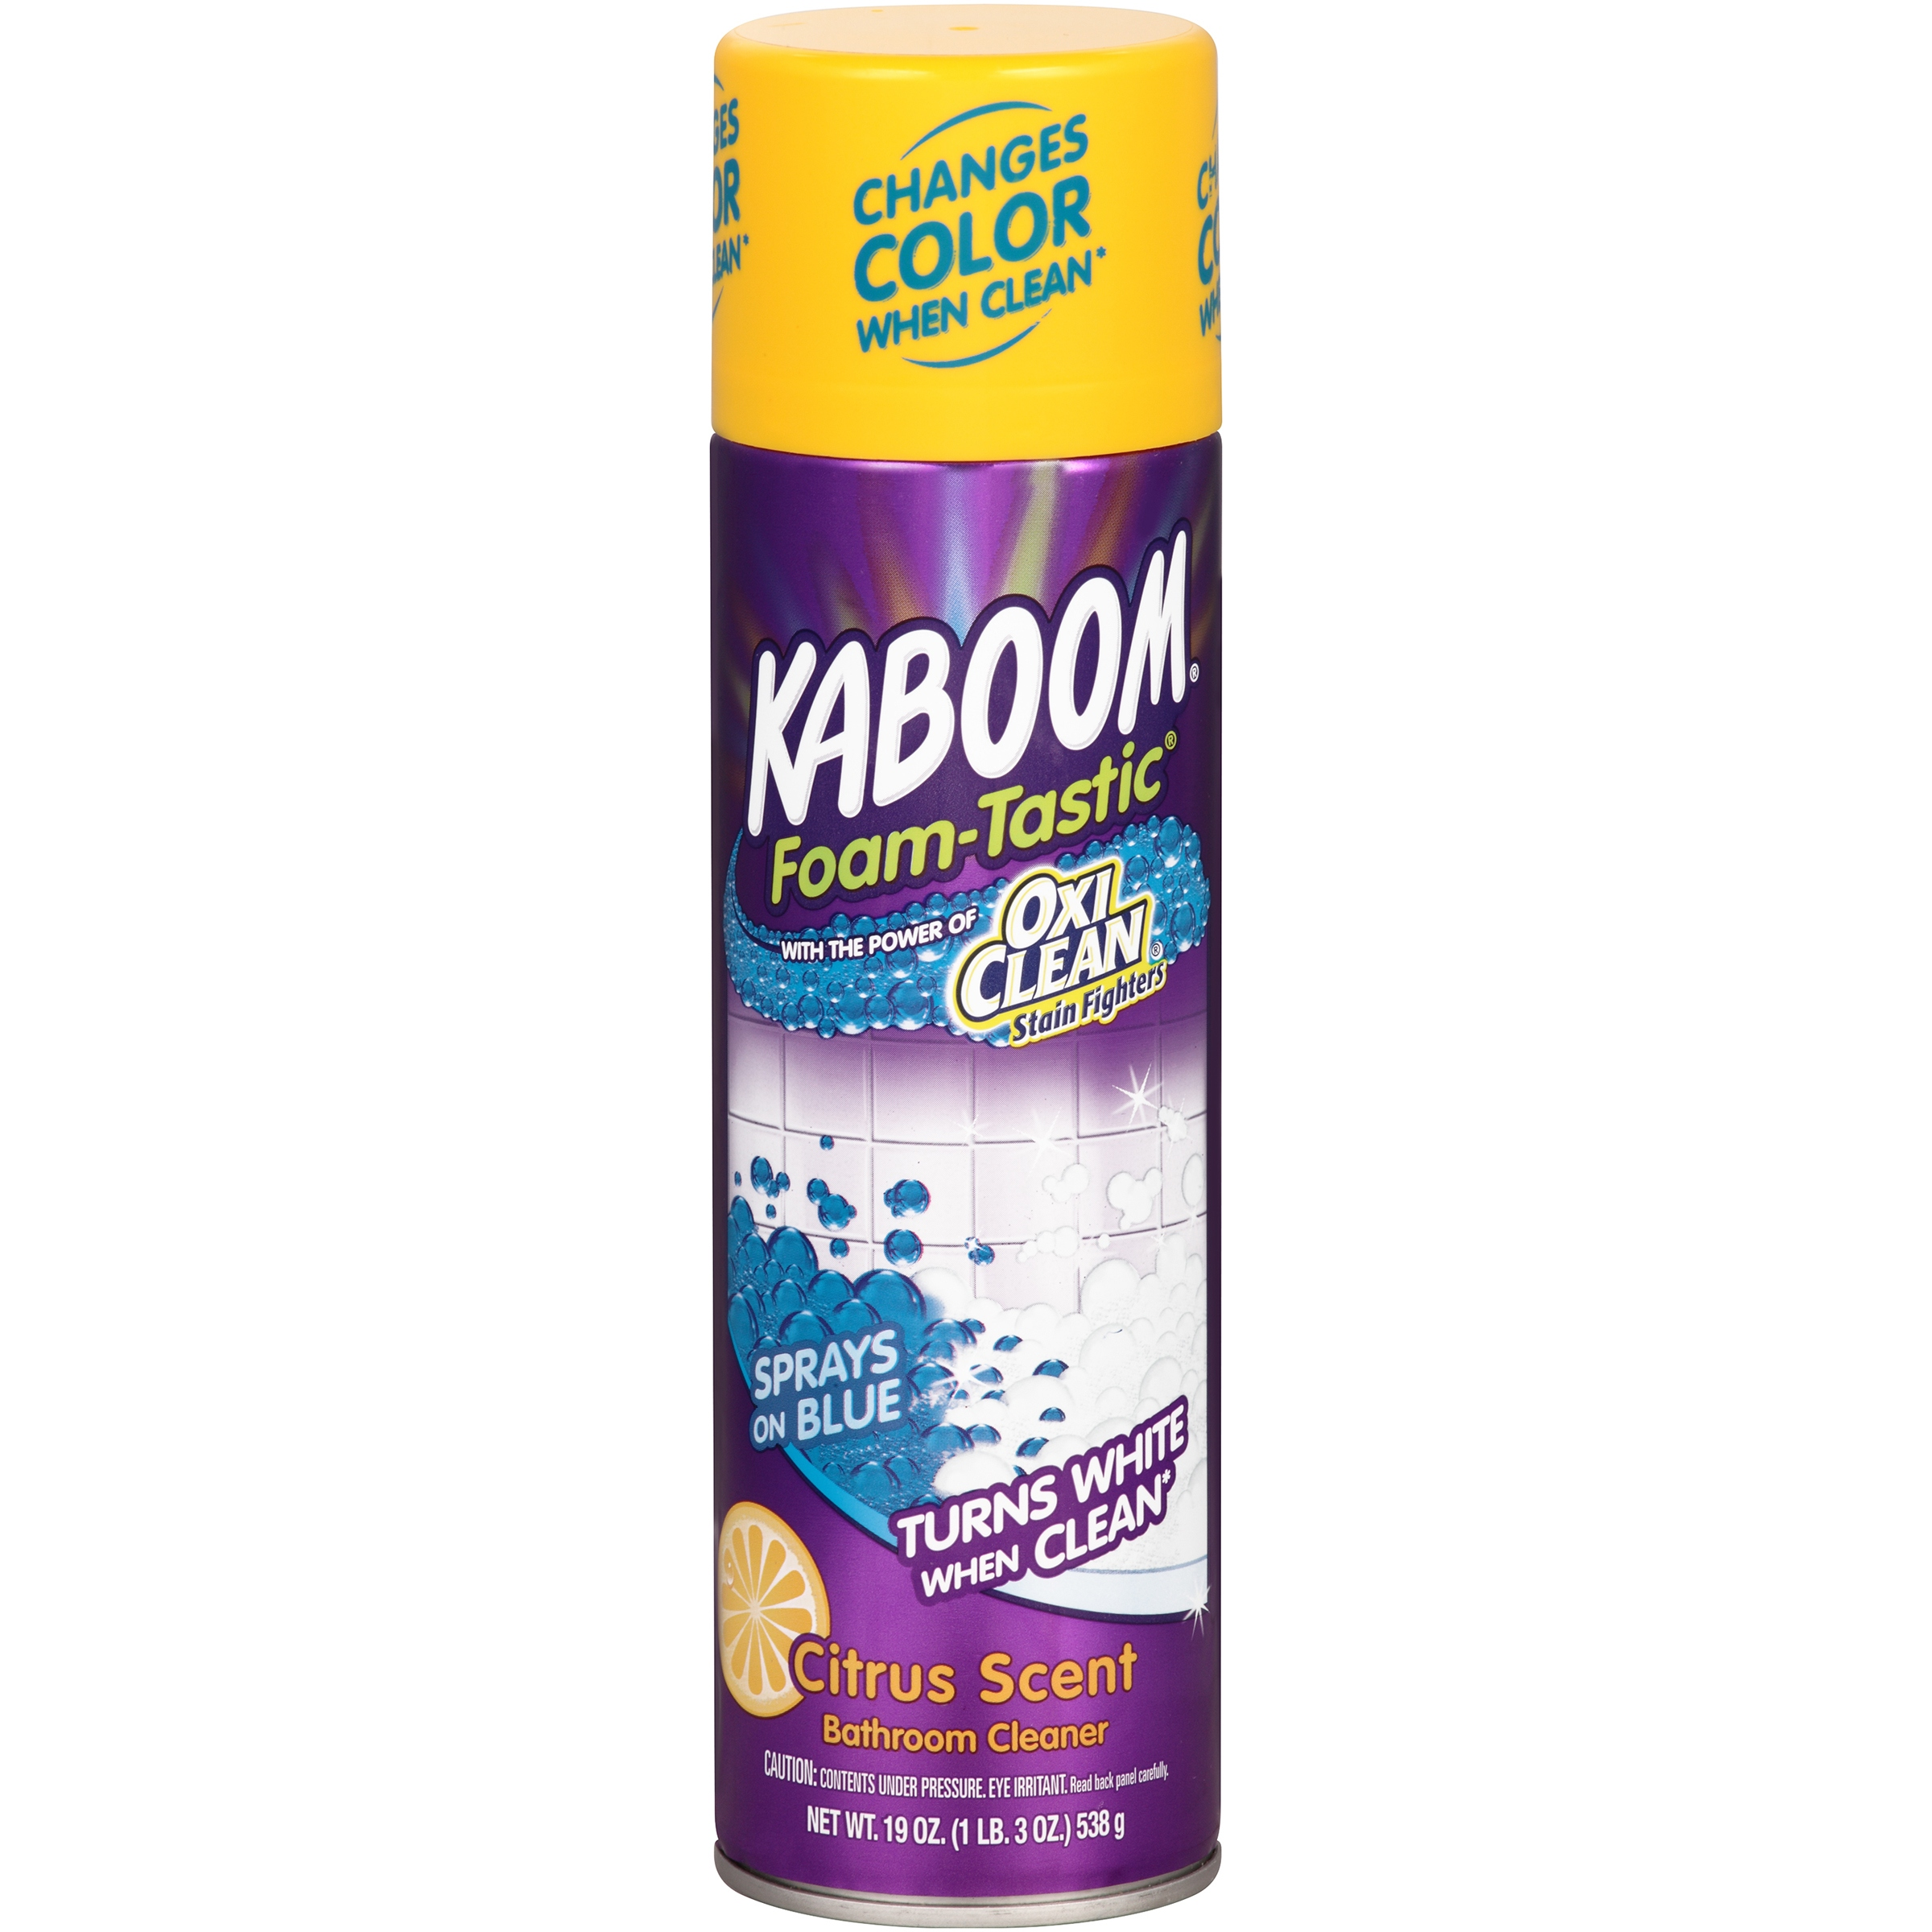 (2 Pack) Kaboom™ Foam-Tastic™ Lemon Citrus Scent Bathroom Cleaner 19 oz. Aerosol Can